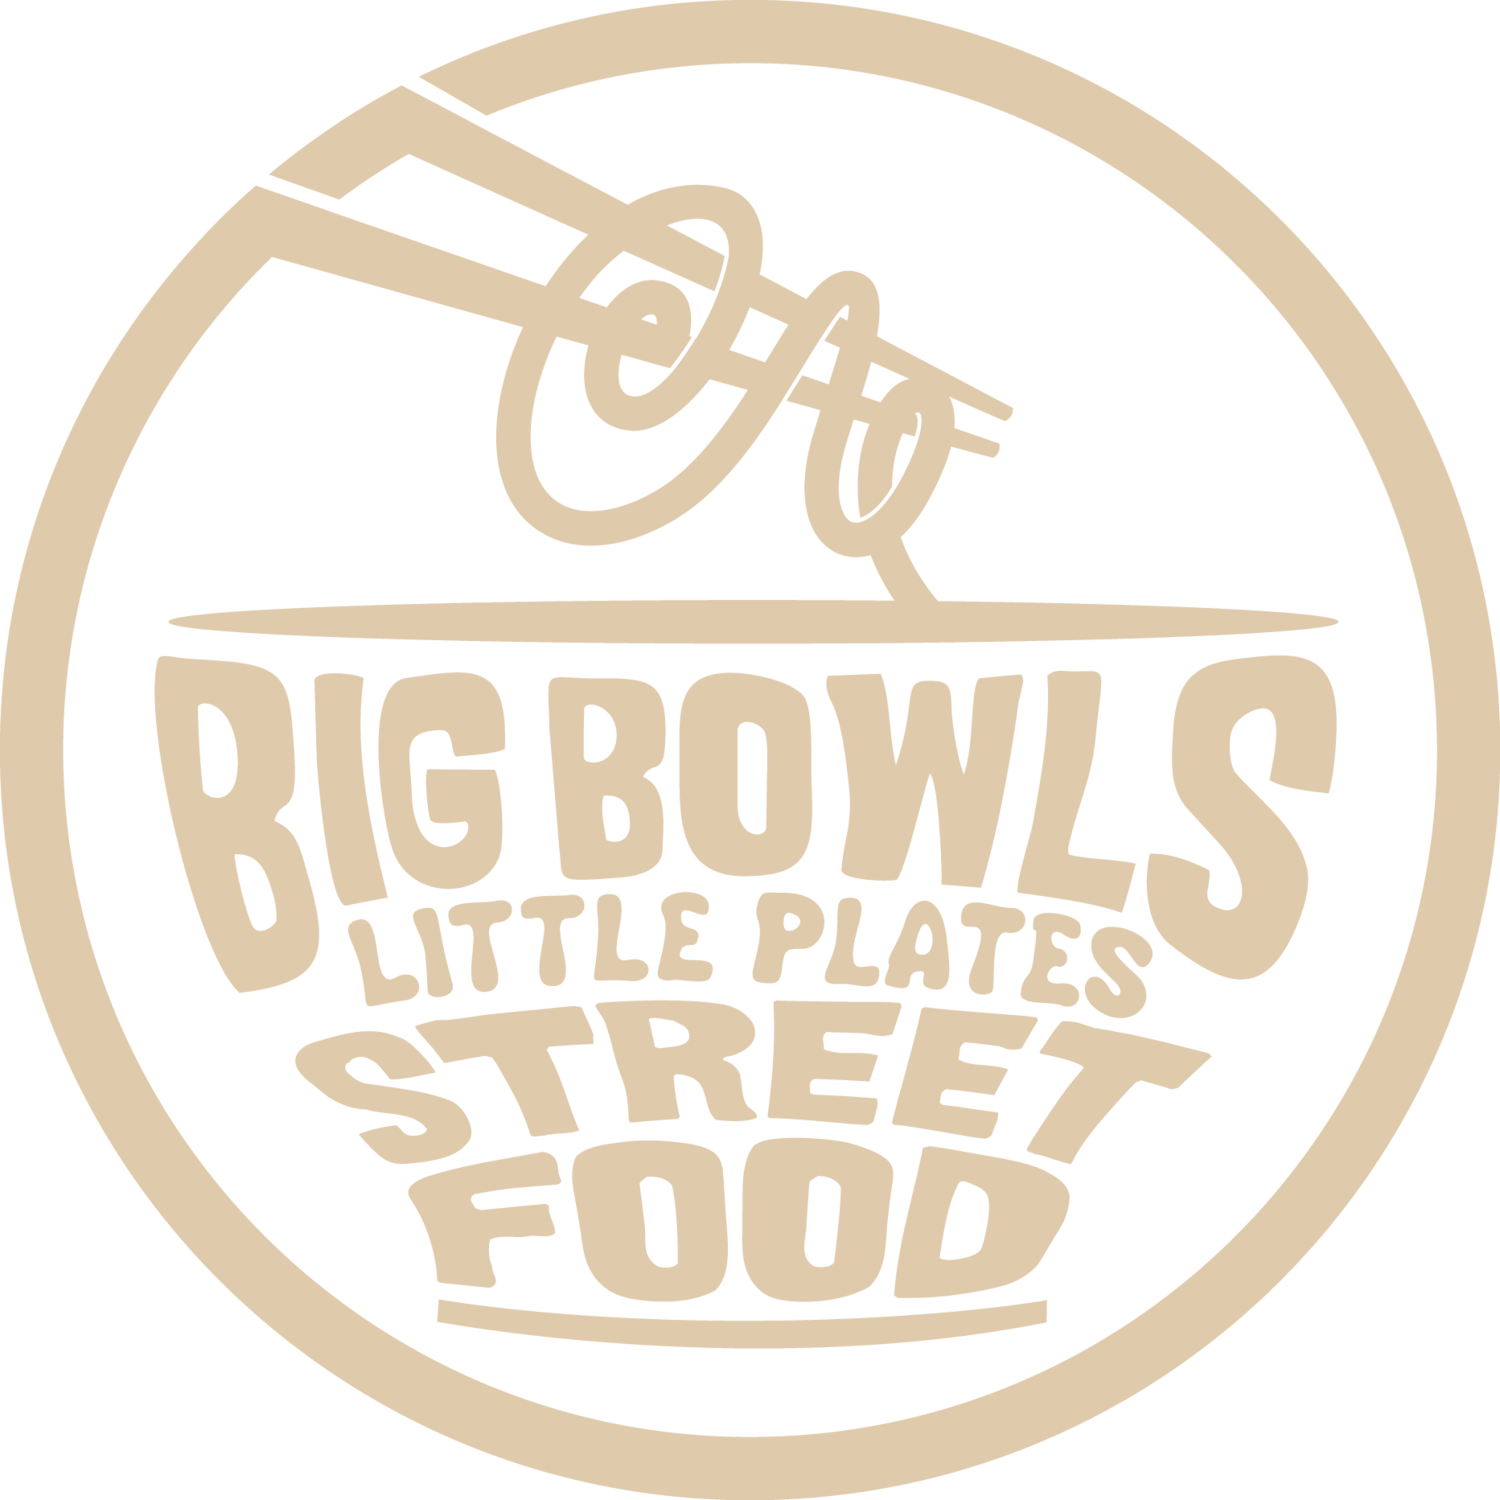 Big Bowls Little Plates Street Food